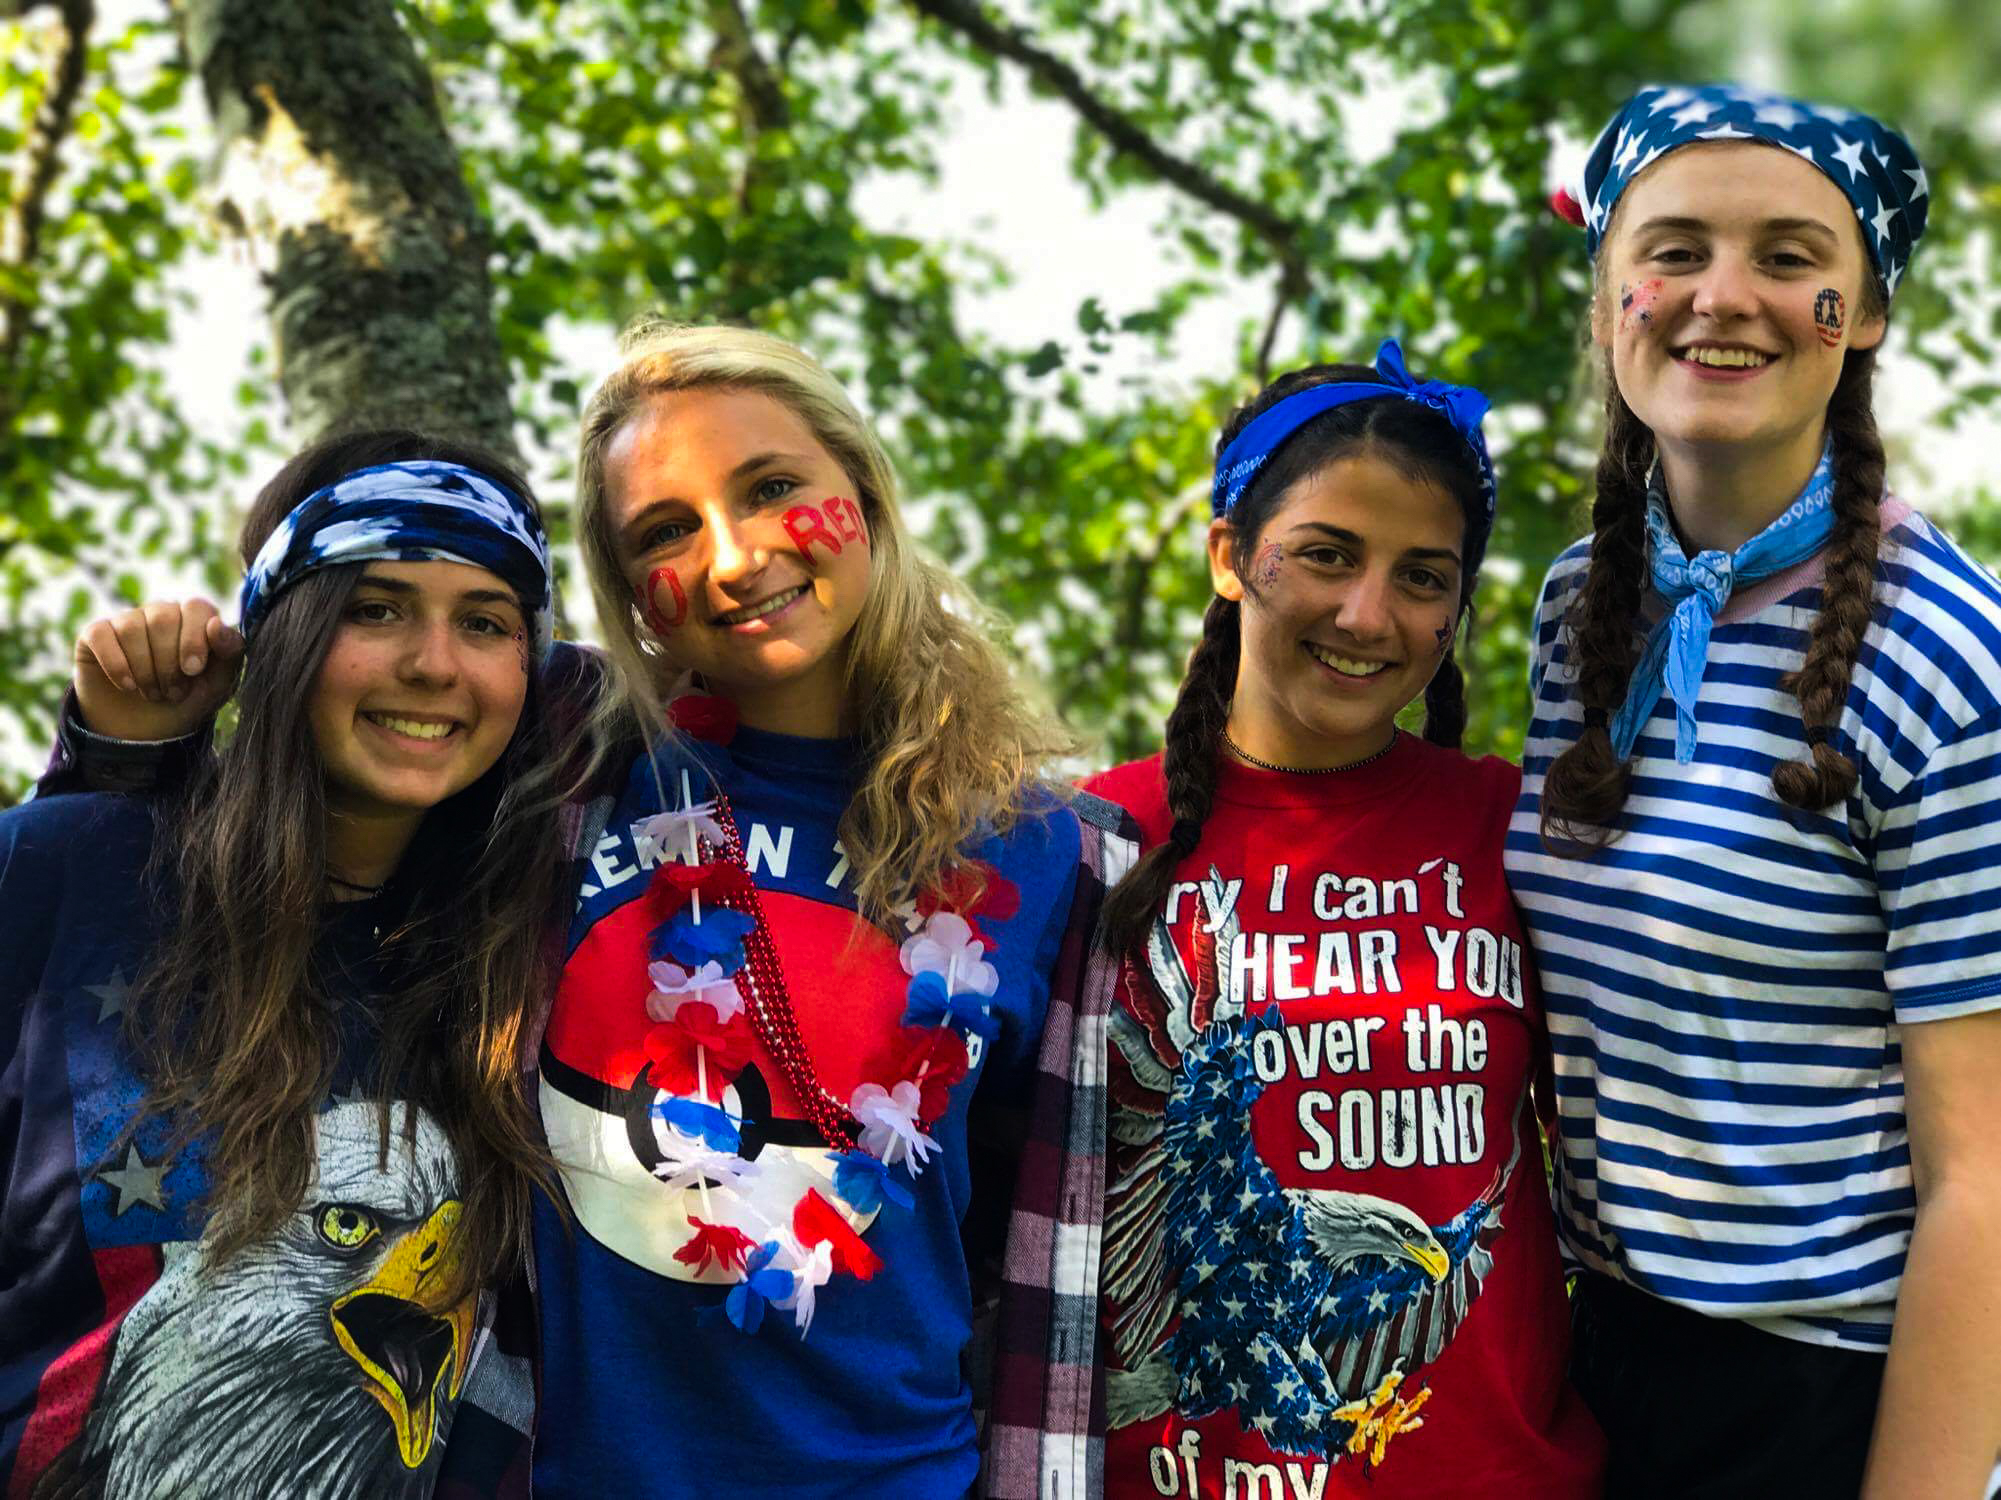 Find out more about working for USA Summer Camp